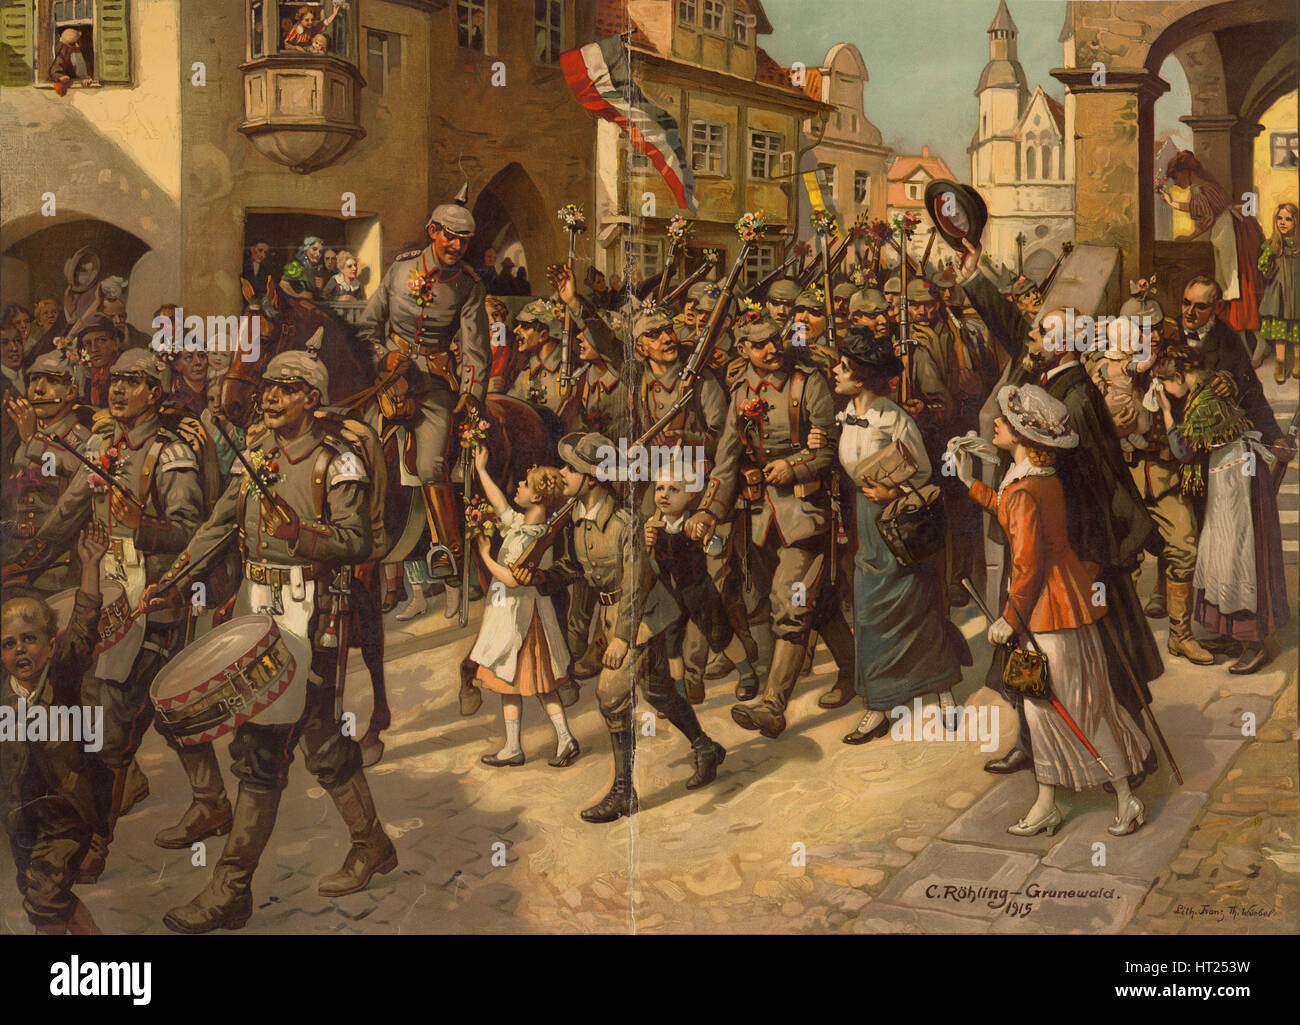 The Mobilization in 1914. Image to Schools History Teaching, 1915. Artist: Röhling, Carl (1849-1922) - Stock Image